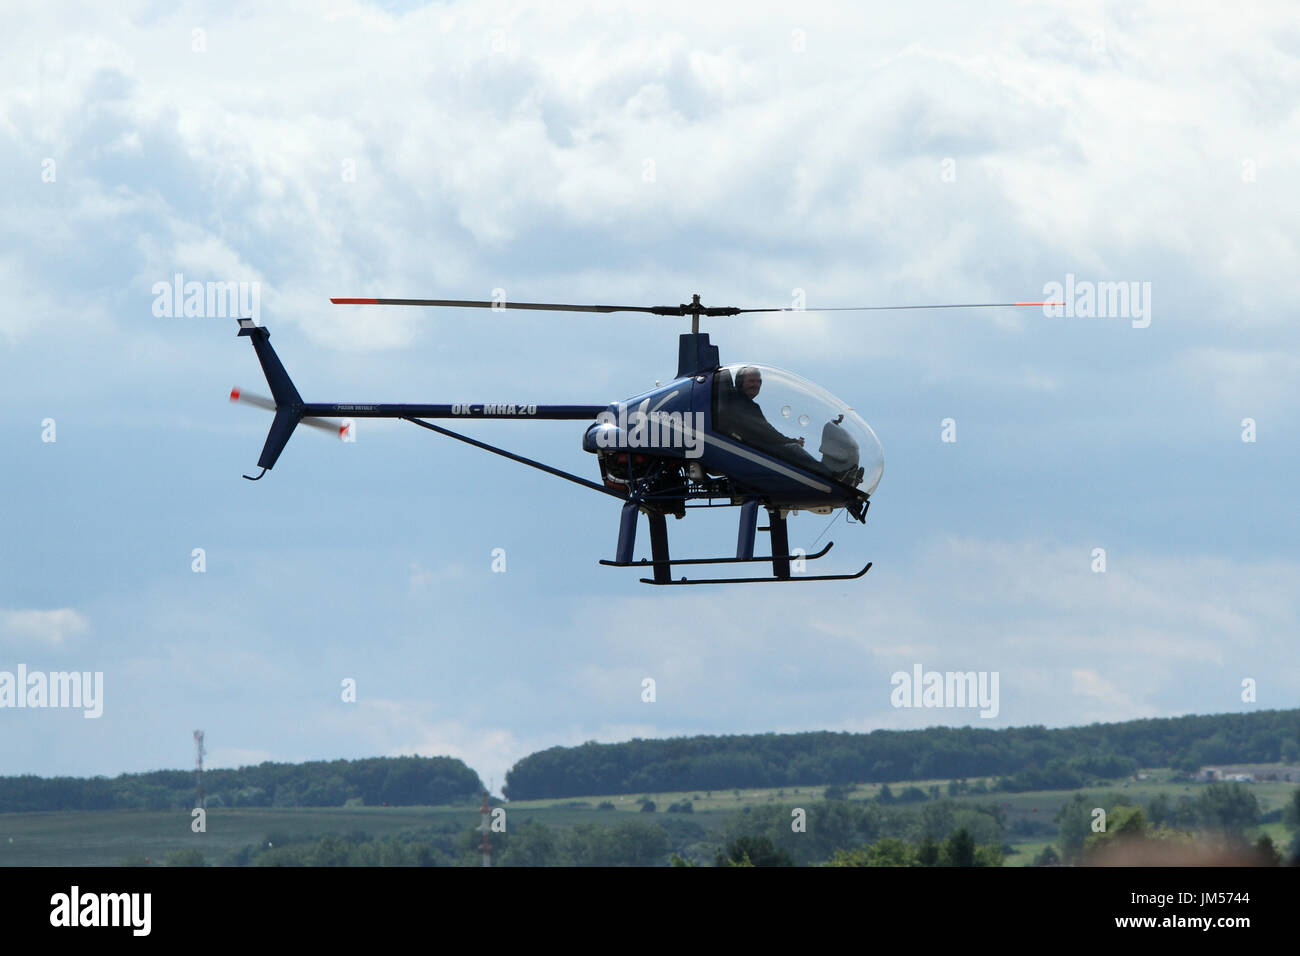 Ch 7 Elicottero : Light helicopter stock photos